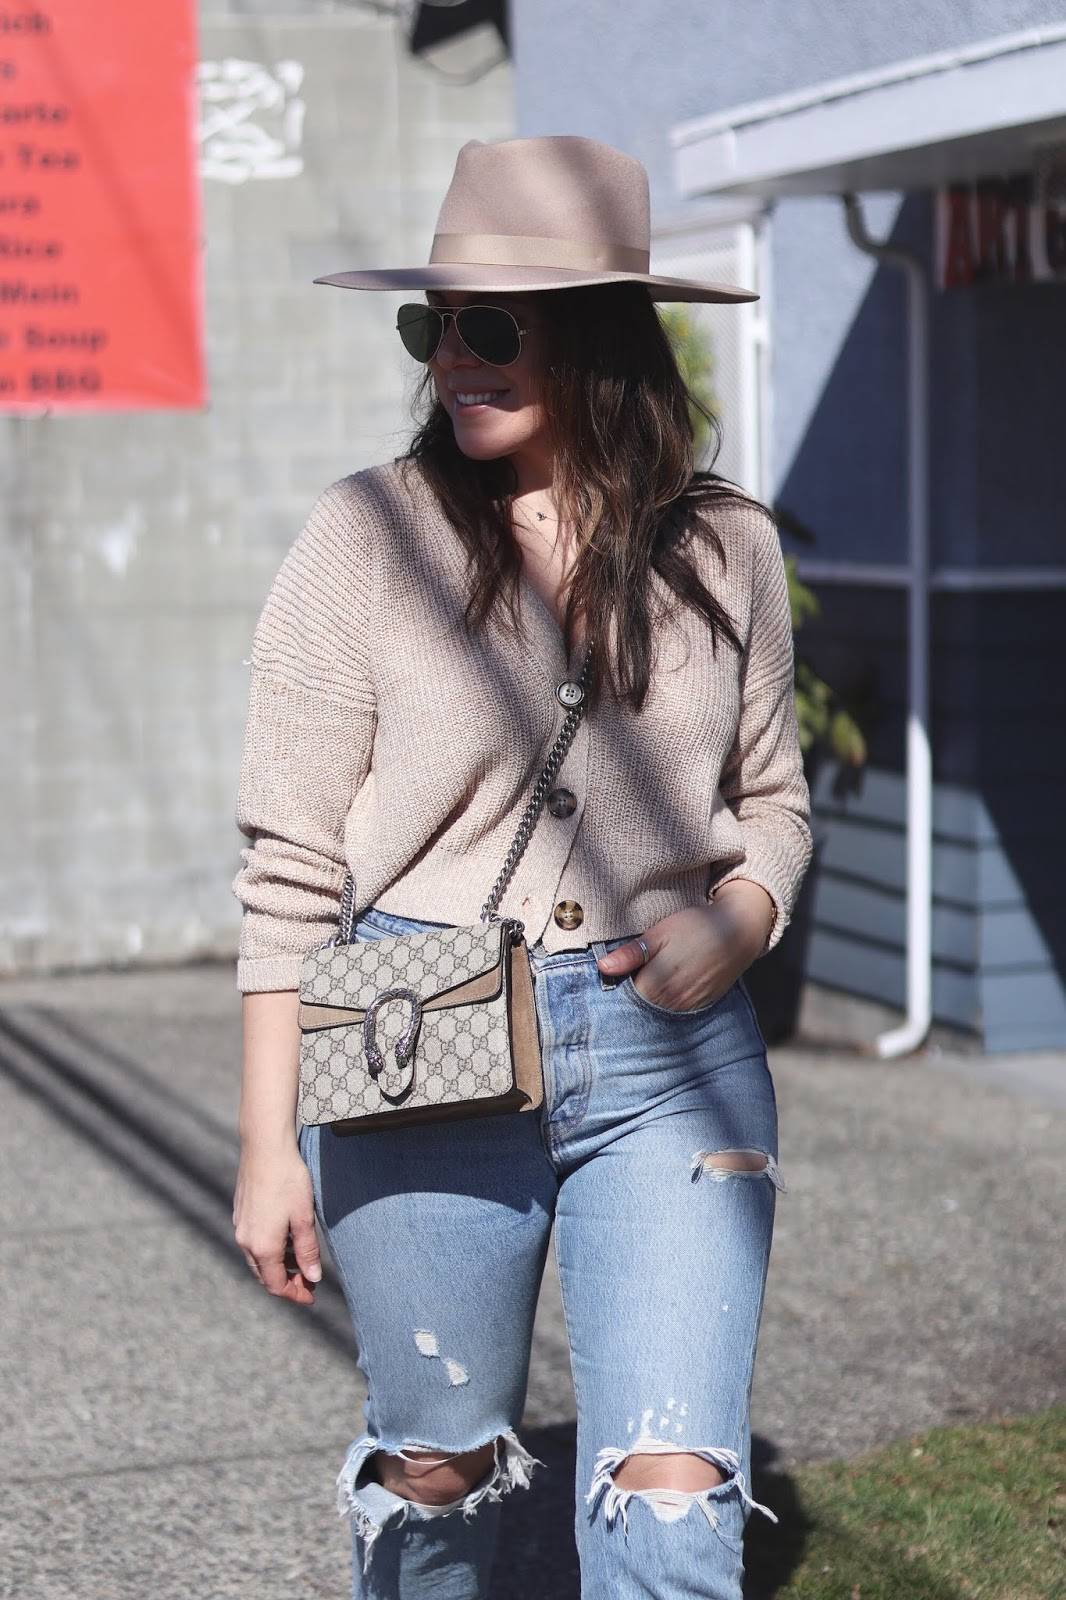 button front sweater lack of color rancher hat levis wedgie jeans vancouver fashion blogger